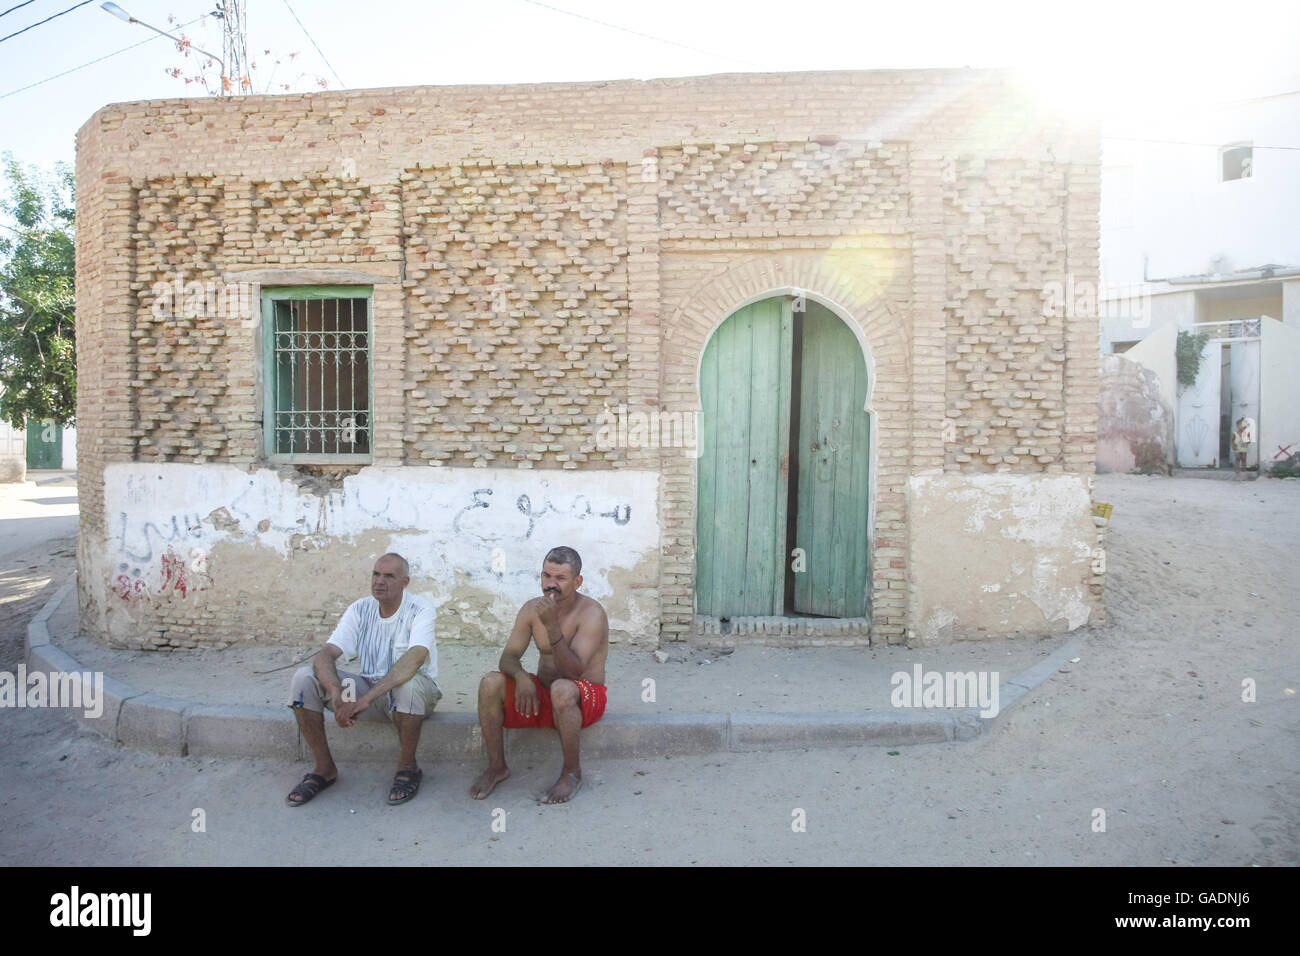 TOZEUR, TUNISIA - SEPTEMBER 16, 2012 : Two tunisian men sitting on the pavement in front of the house in Tozeur, Stock Photo